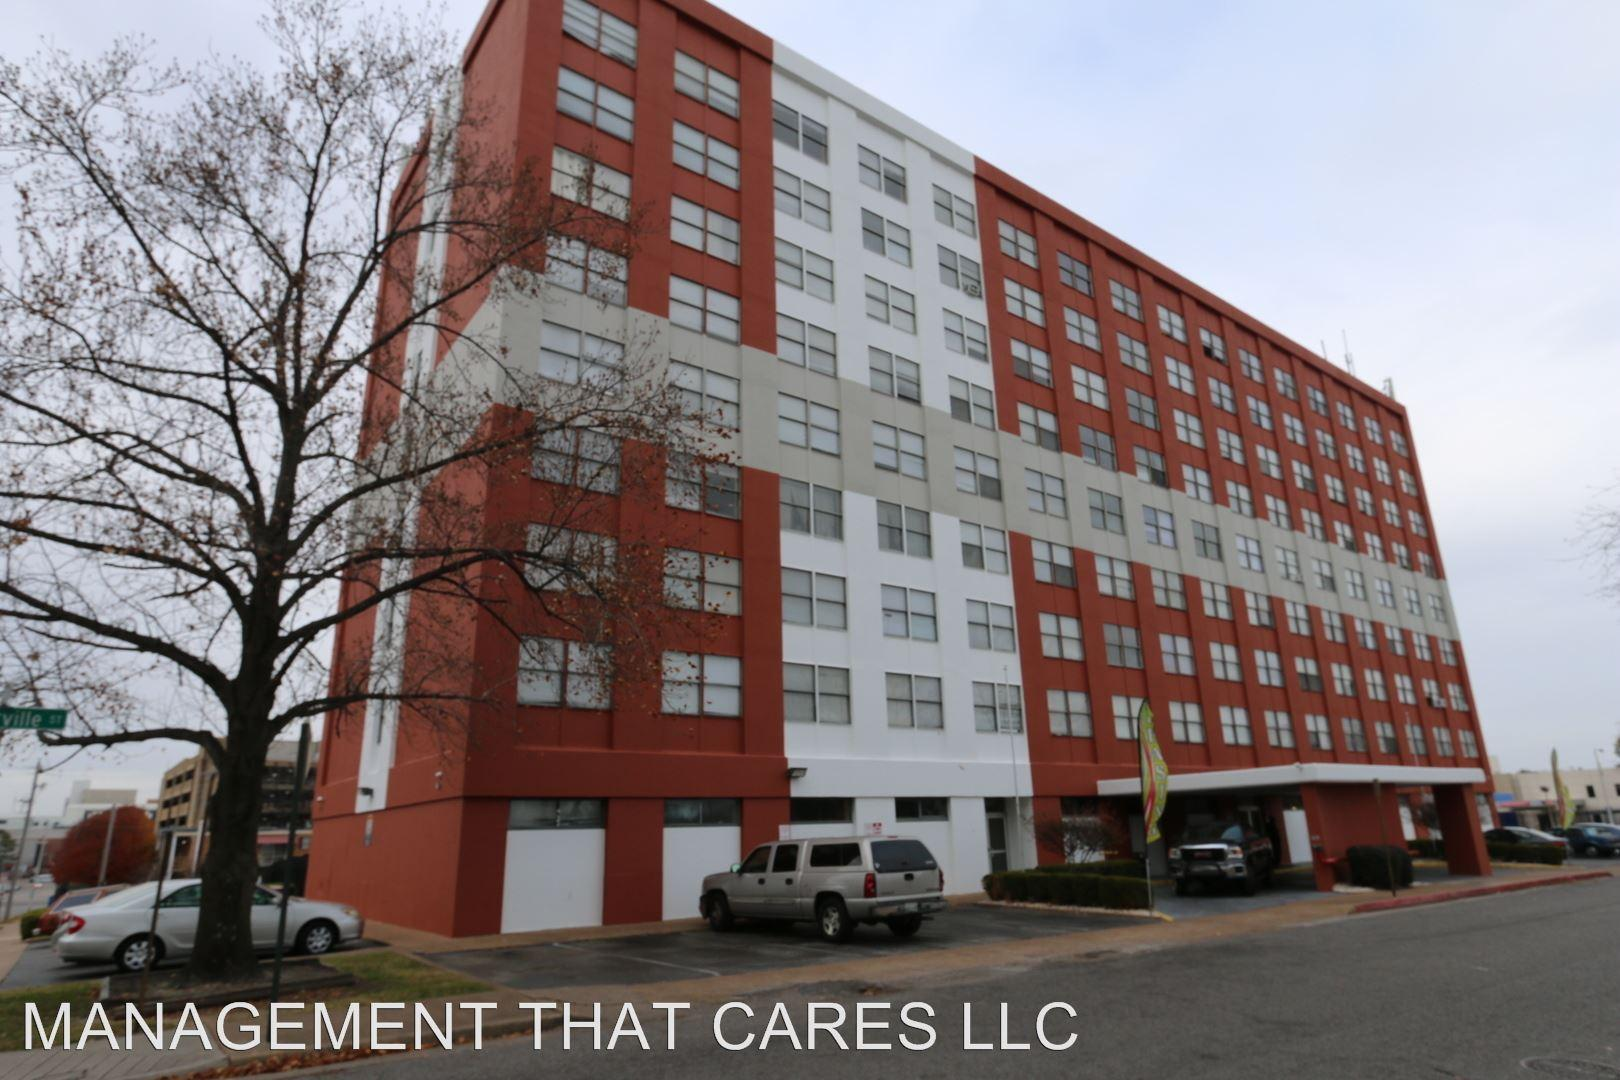 57 N Somerville St Apartments photo #1